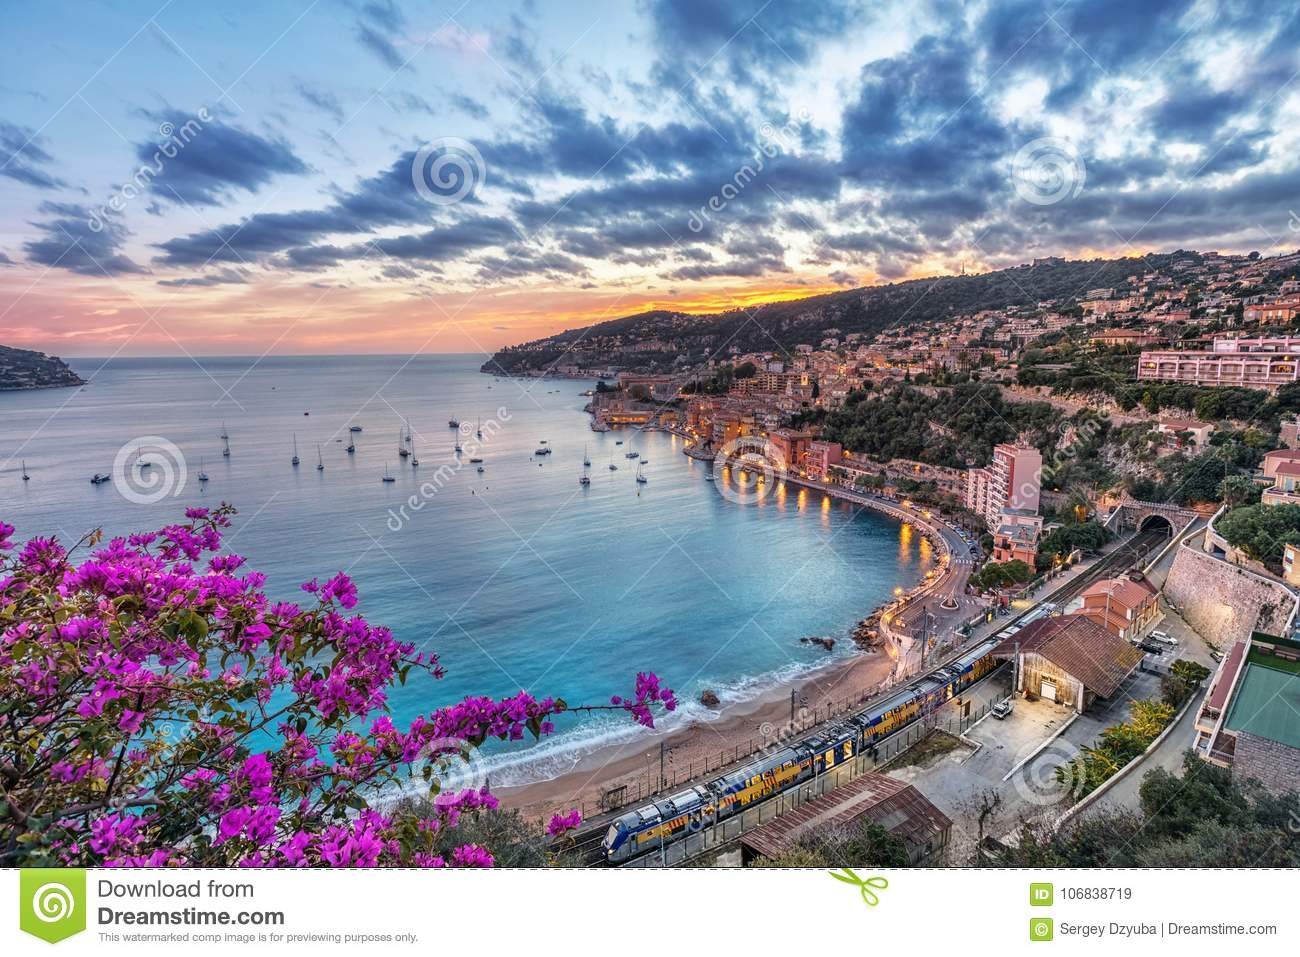 Aerial view of Villefranche-sur-Mer on sunset, France